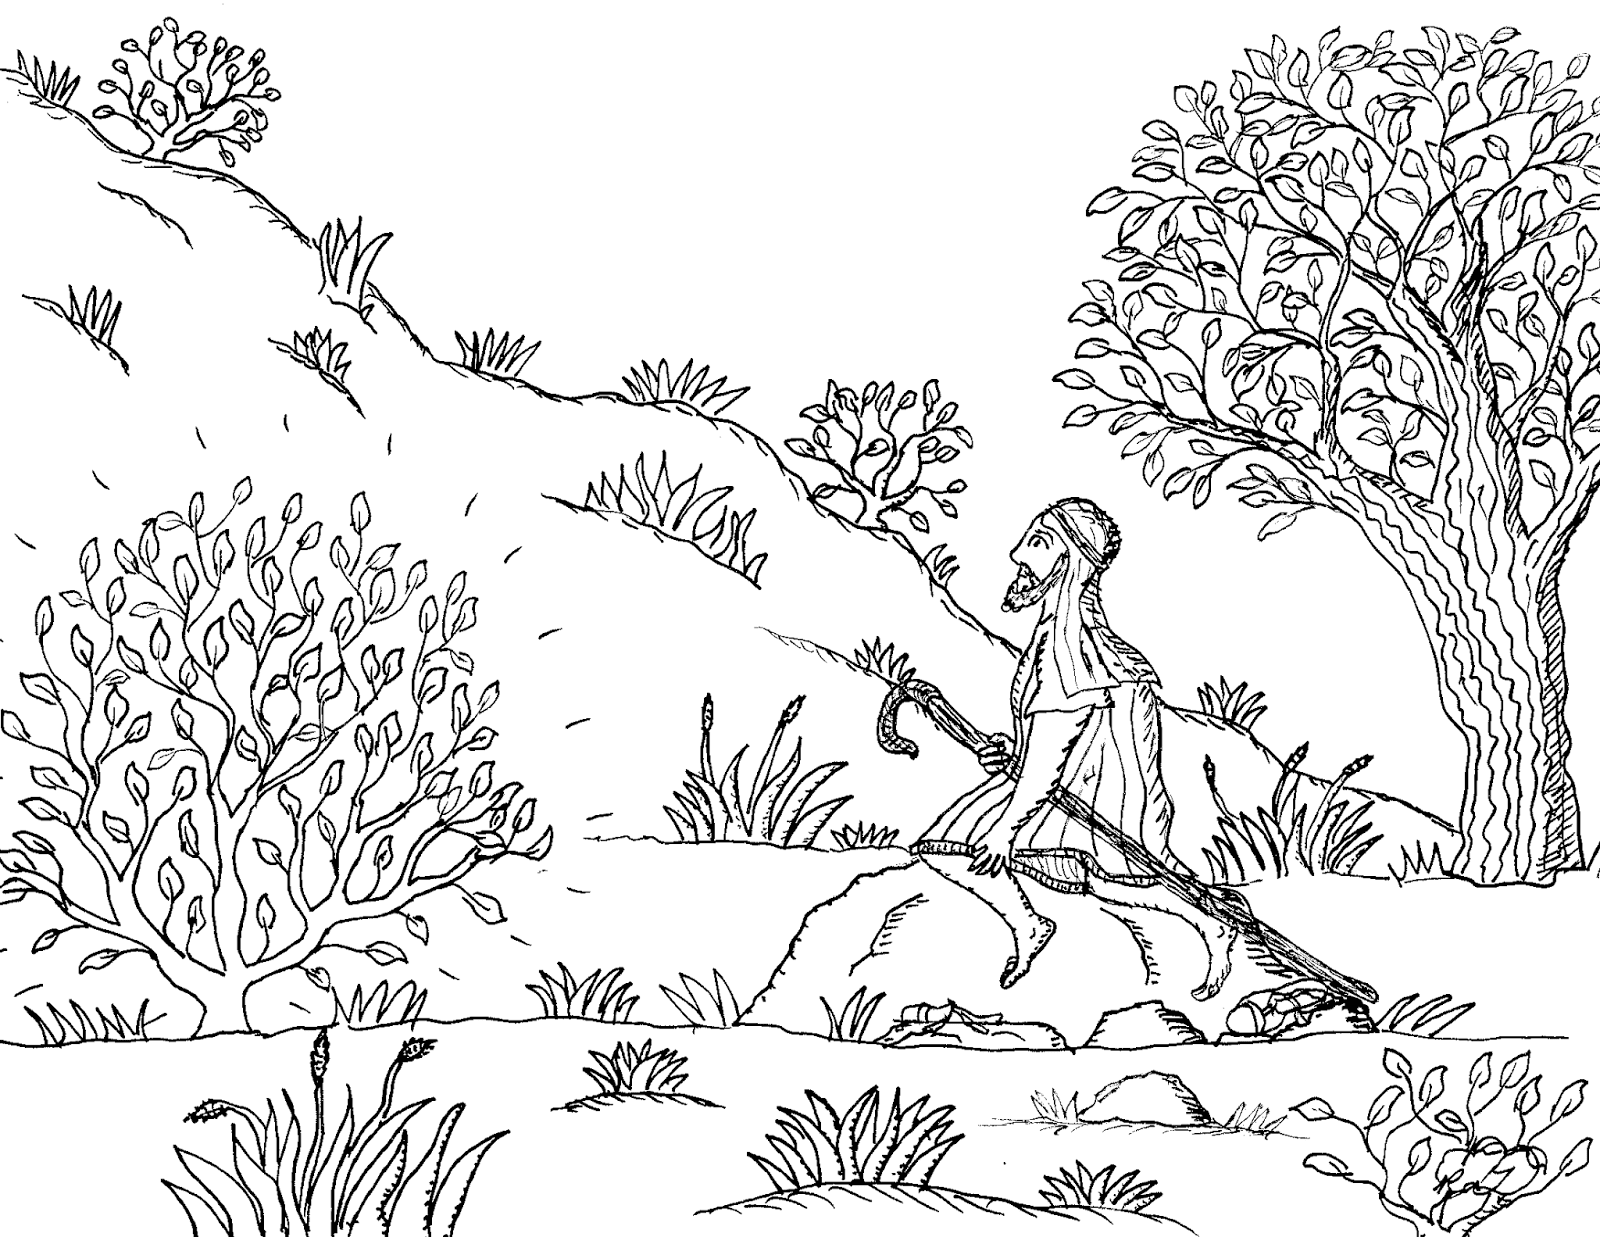 The Burning Bush Coloring Page - That Resource Site | 1237x1600